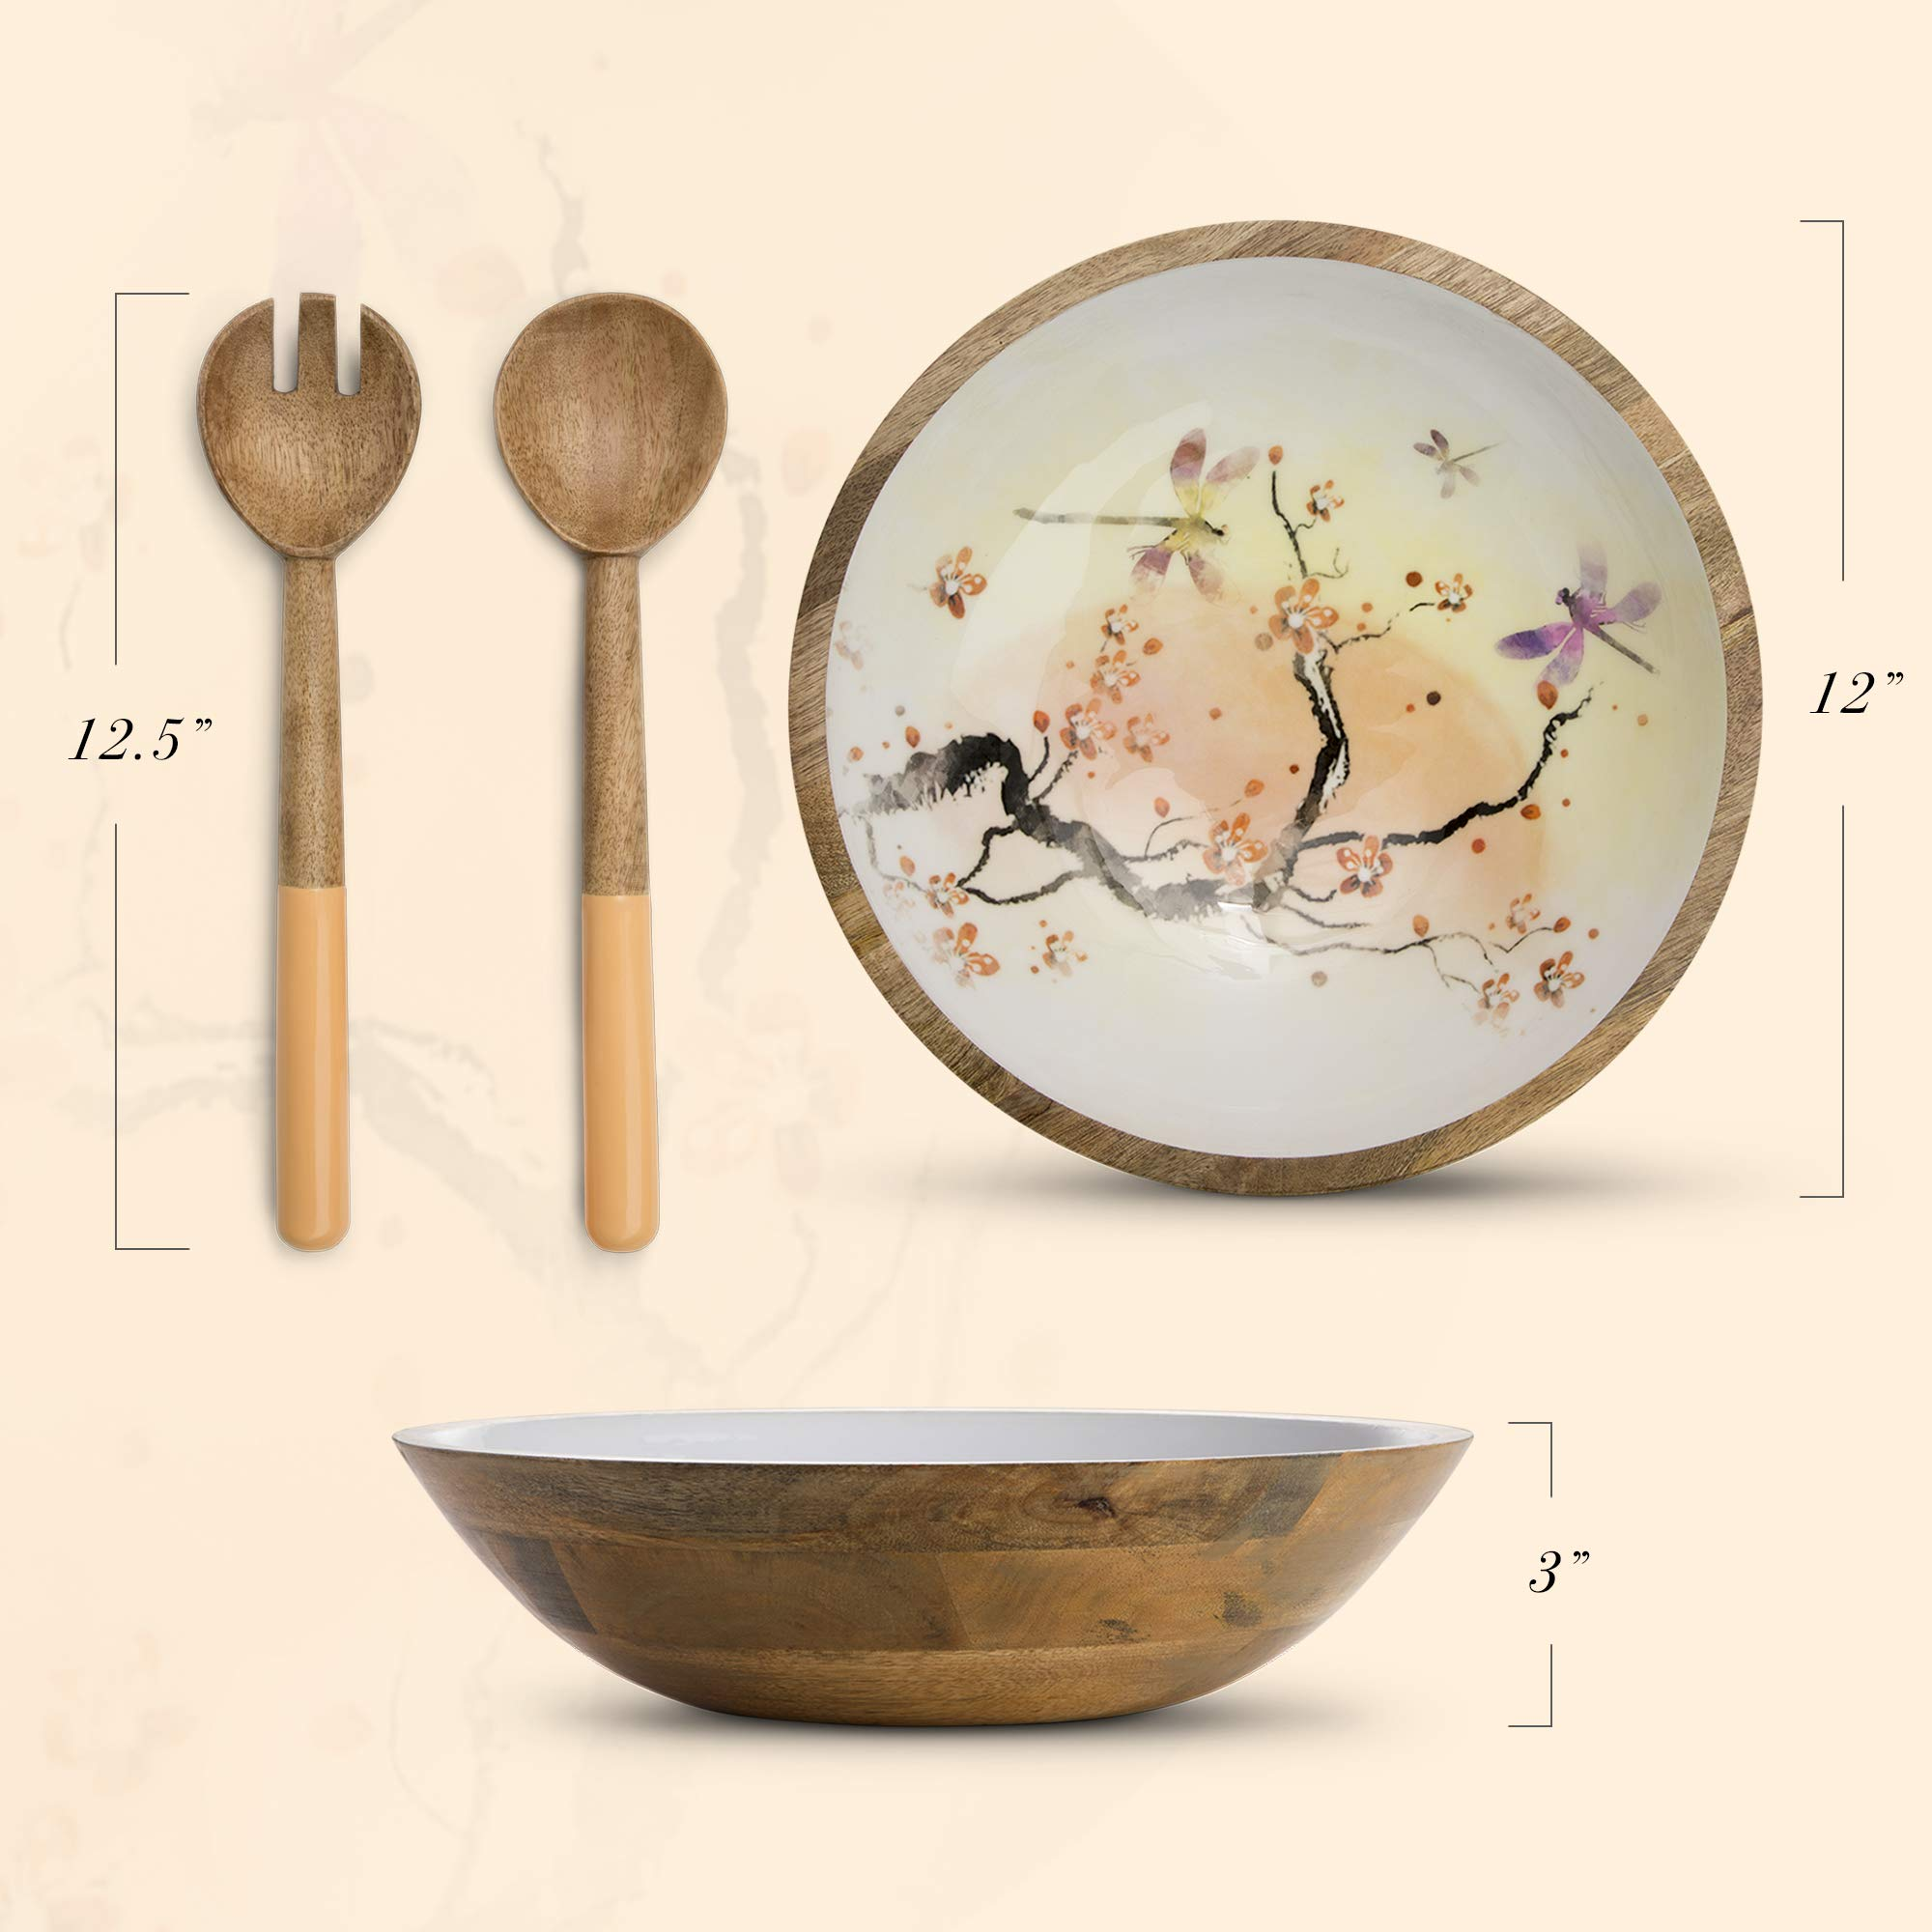 Wood Salad Bowl Set with Servers - Large 12 Inch Round Mango Wood Serving Bowl with Spoons for Soups, Fruit, Pasta, Caesar, Tossed, and Mixed Salads | Natural Mango Wood Serving Bowl Set by ELEETS COLLECTION (Image #5)